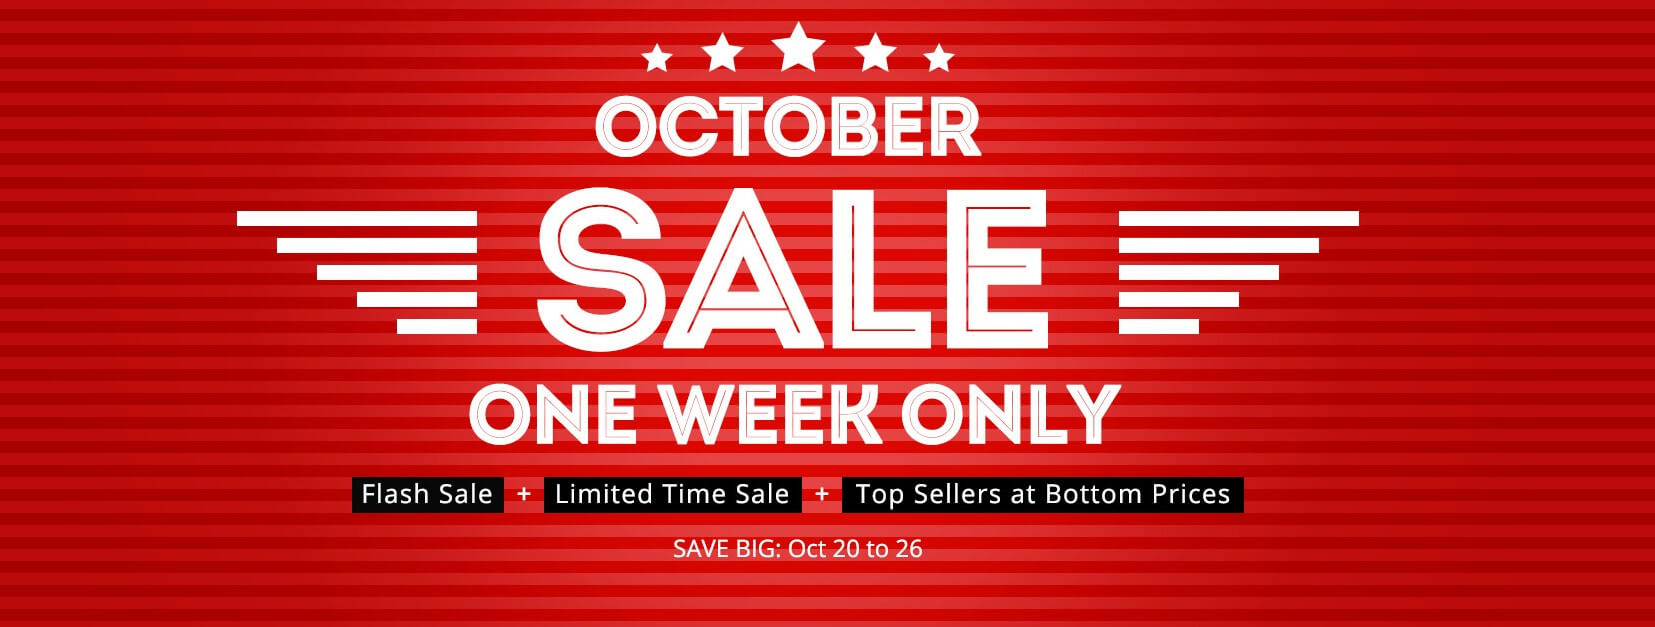 Everbuying online store october huge discount sale for Online retailer for sale